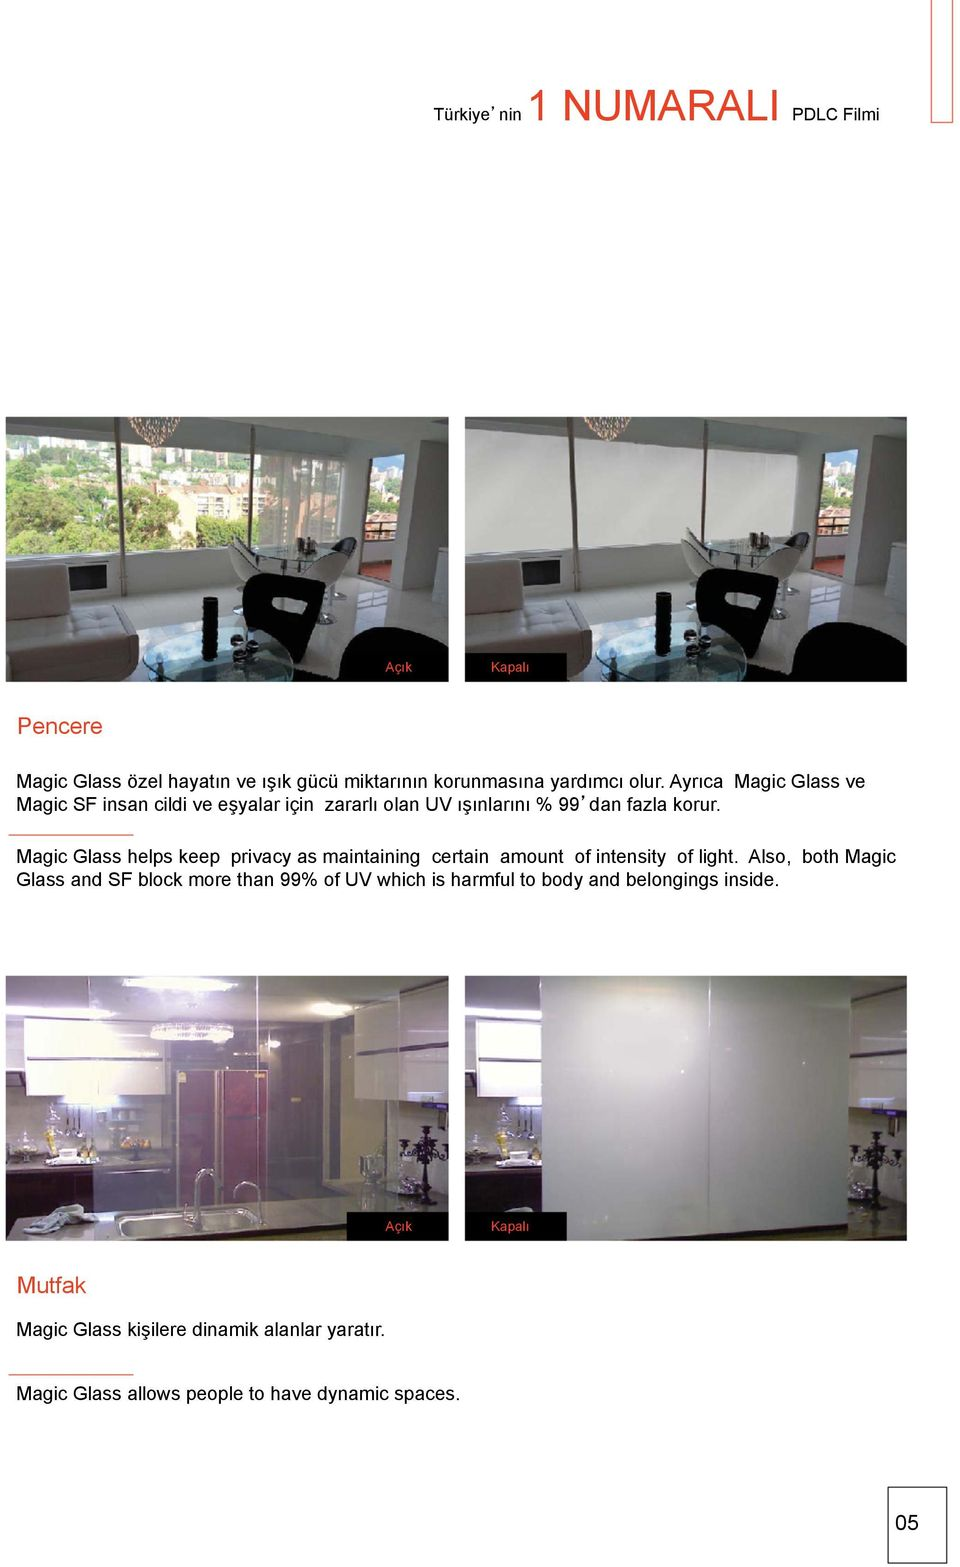 Magic Glass helps keep privacy as maintaining certain amount of intensity of light.